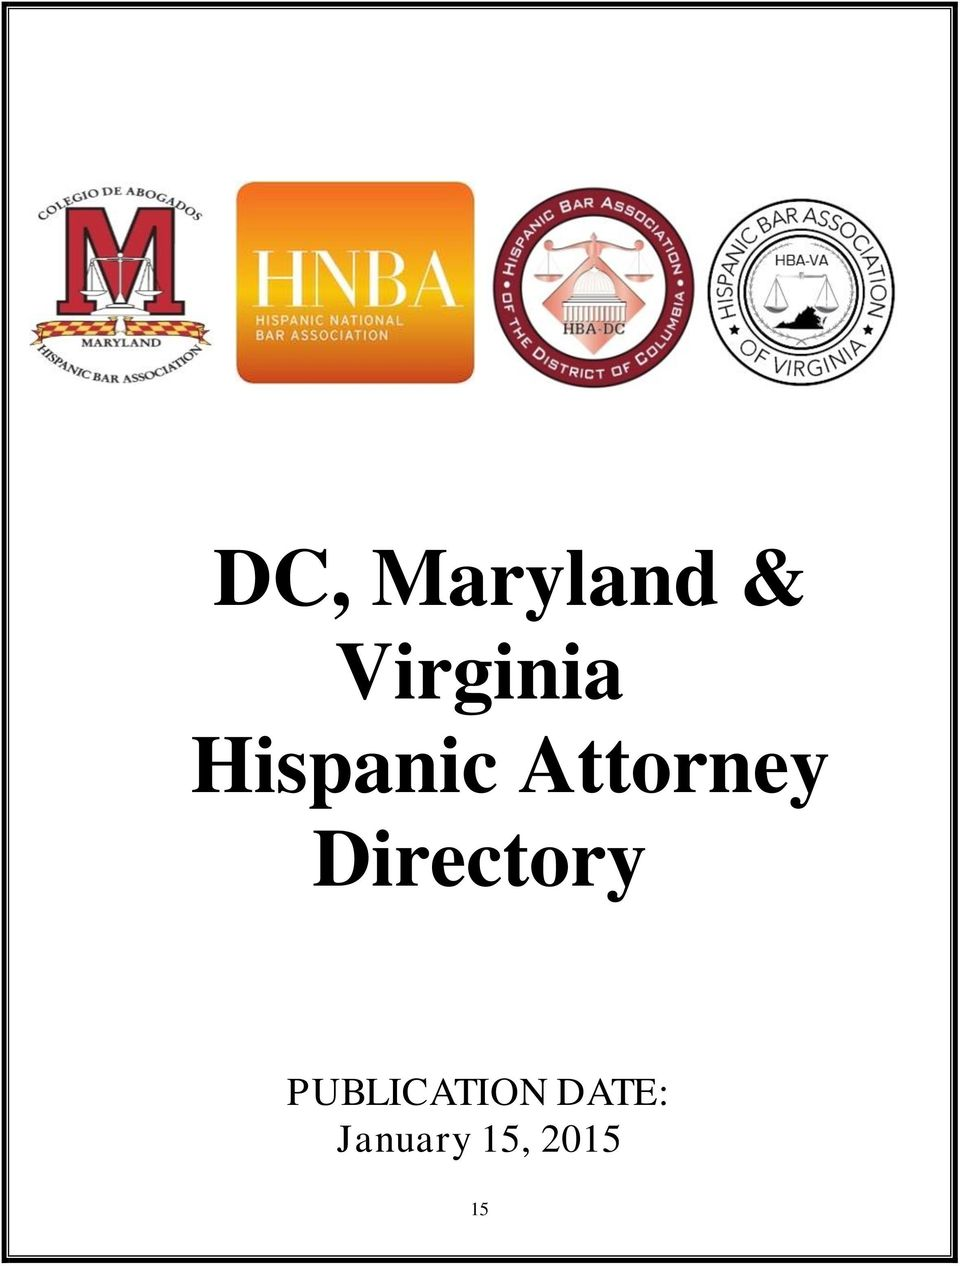 district of columbia latin dating site Layc presented by hispanic bar association of the district of columbia with hugh a  the latin american montessori  the latin american youth center .